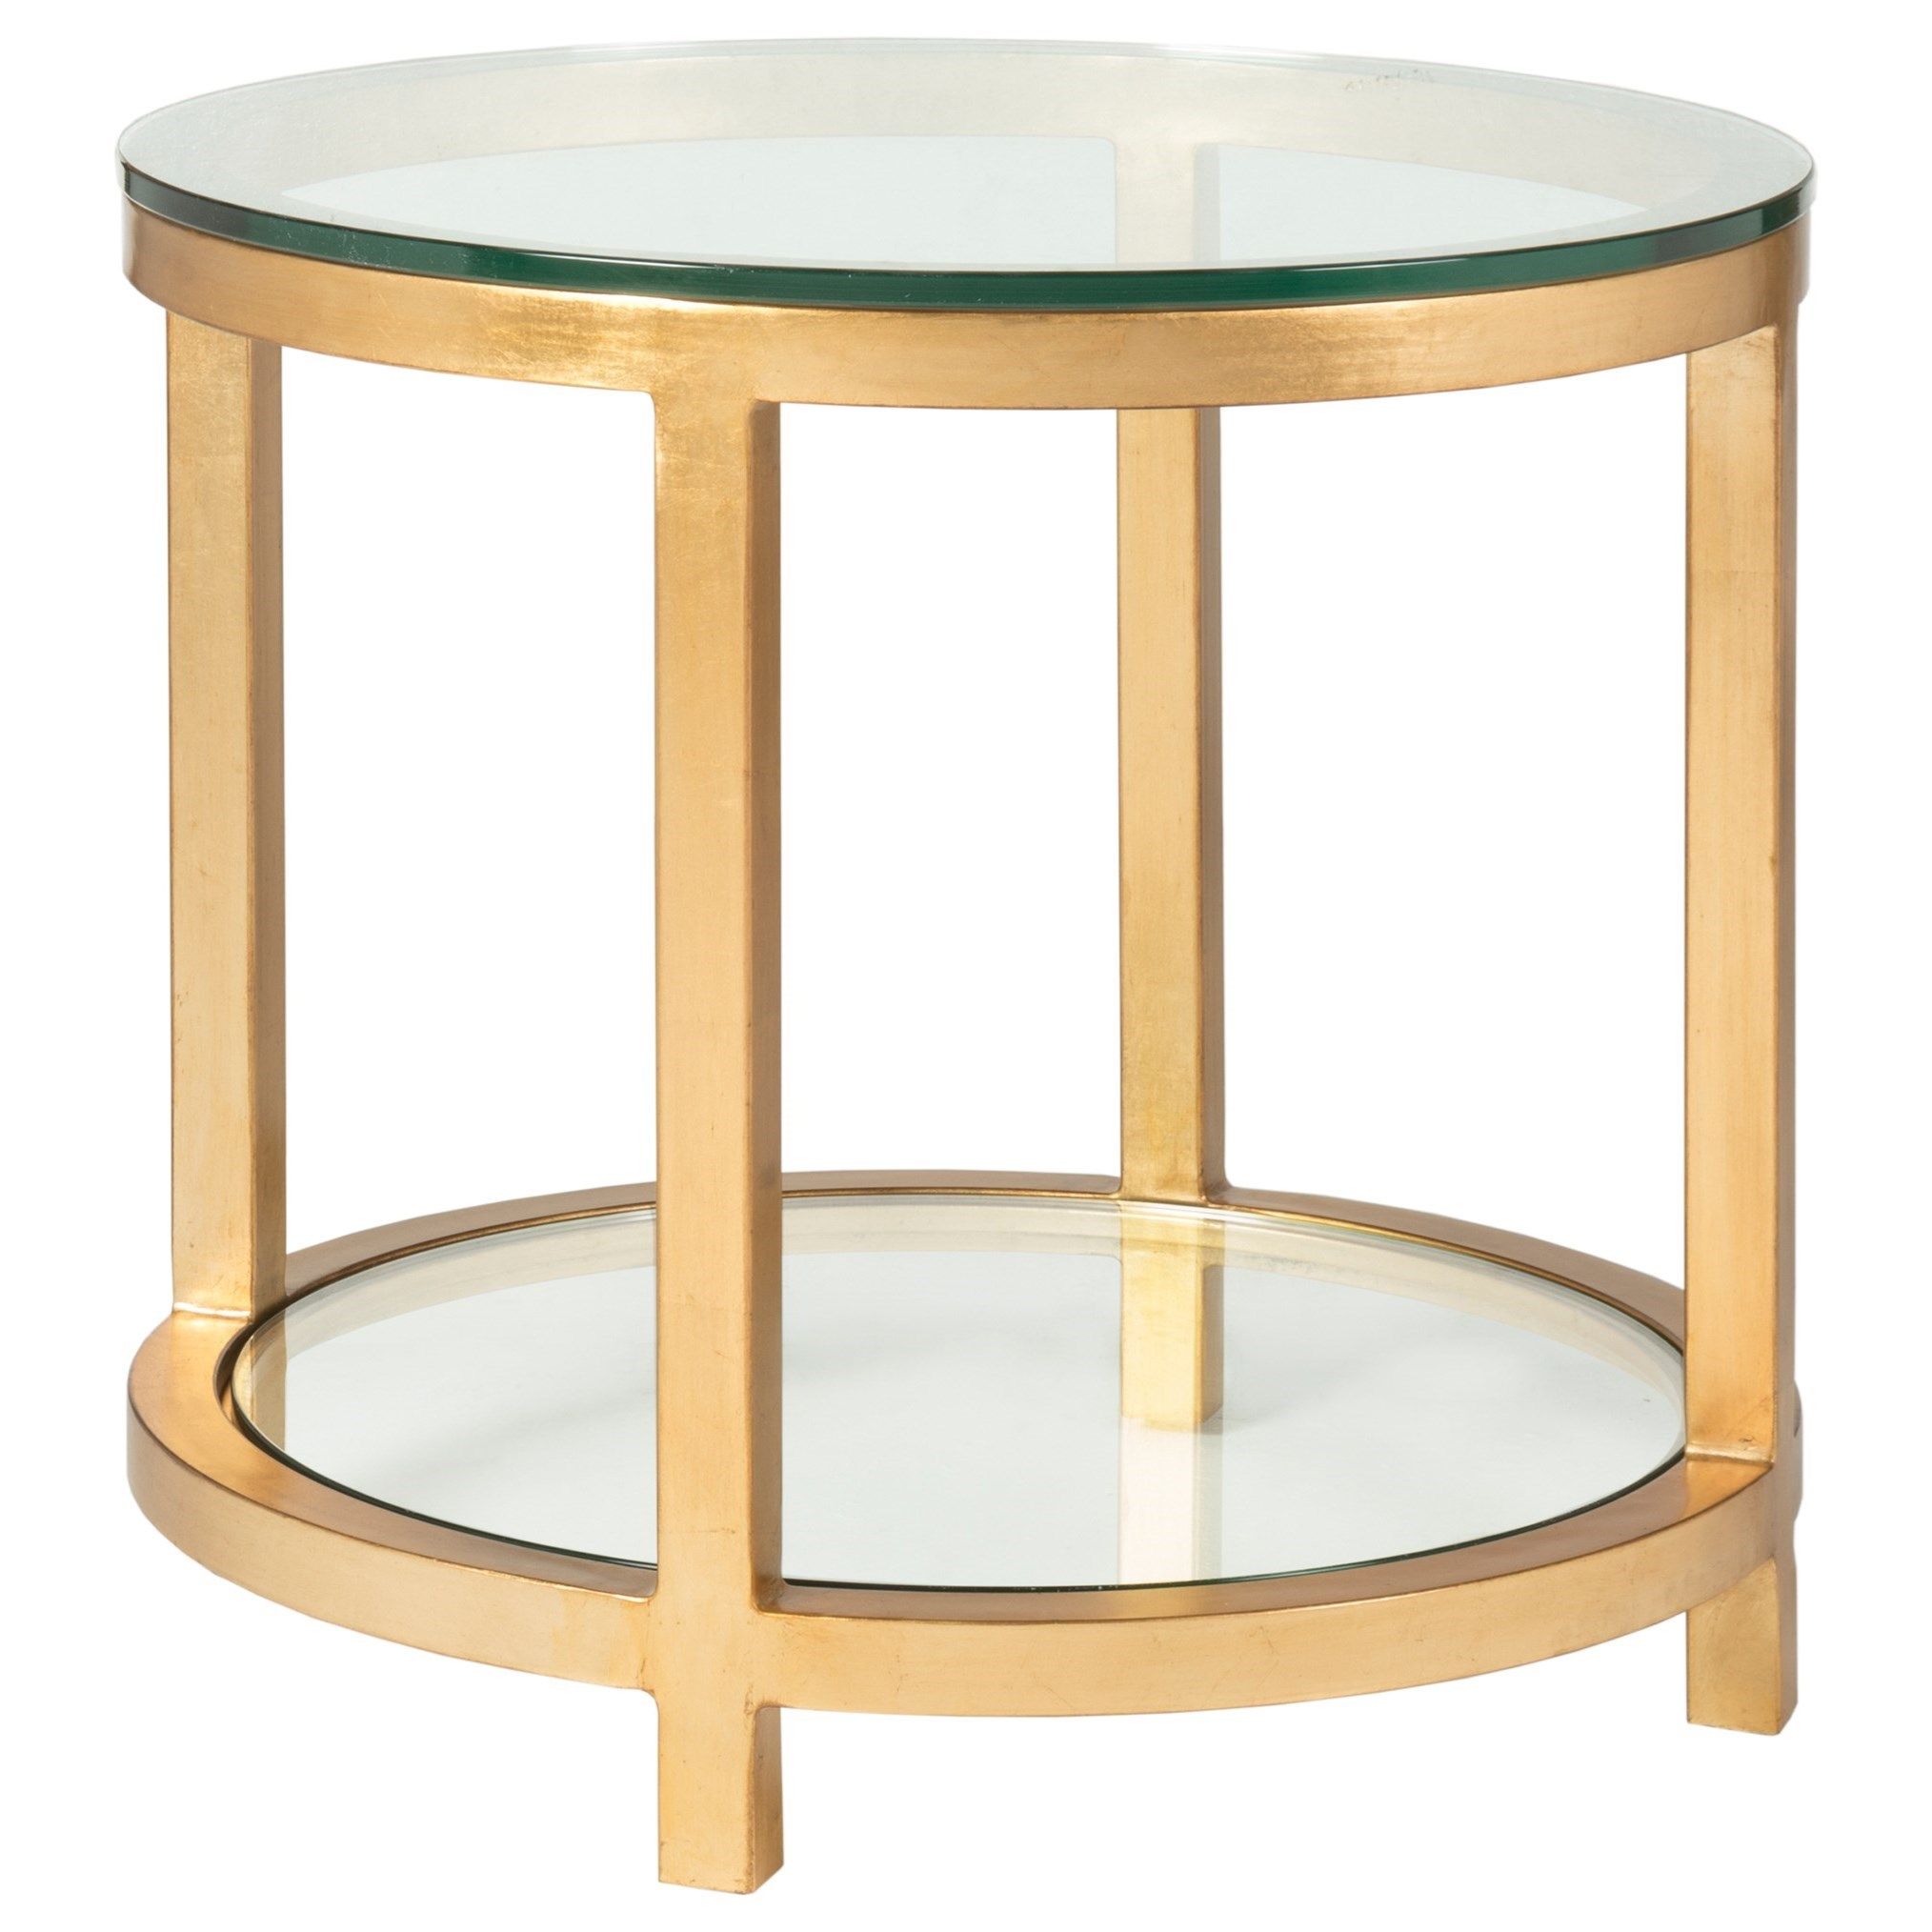 Metal Designs Per Se Round End Table by Artistica at Baer's Furniture